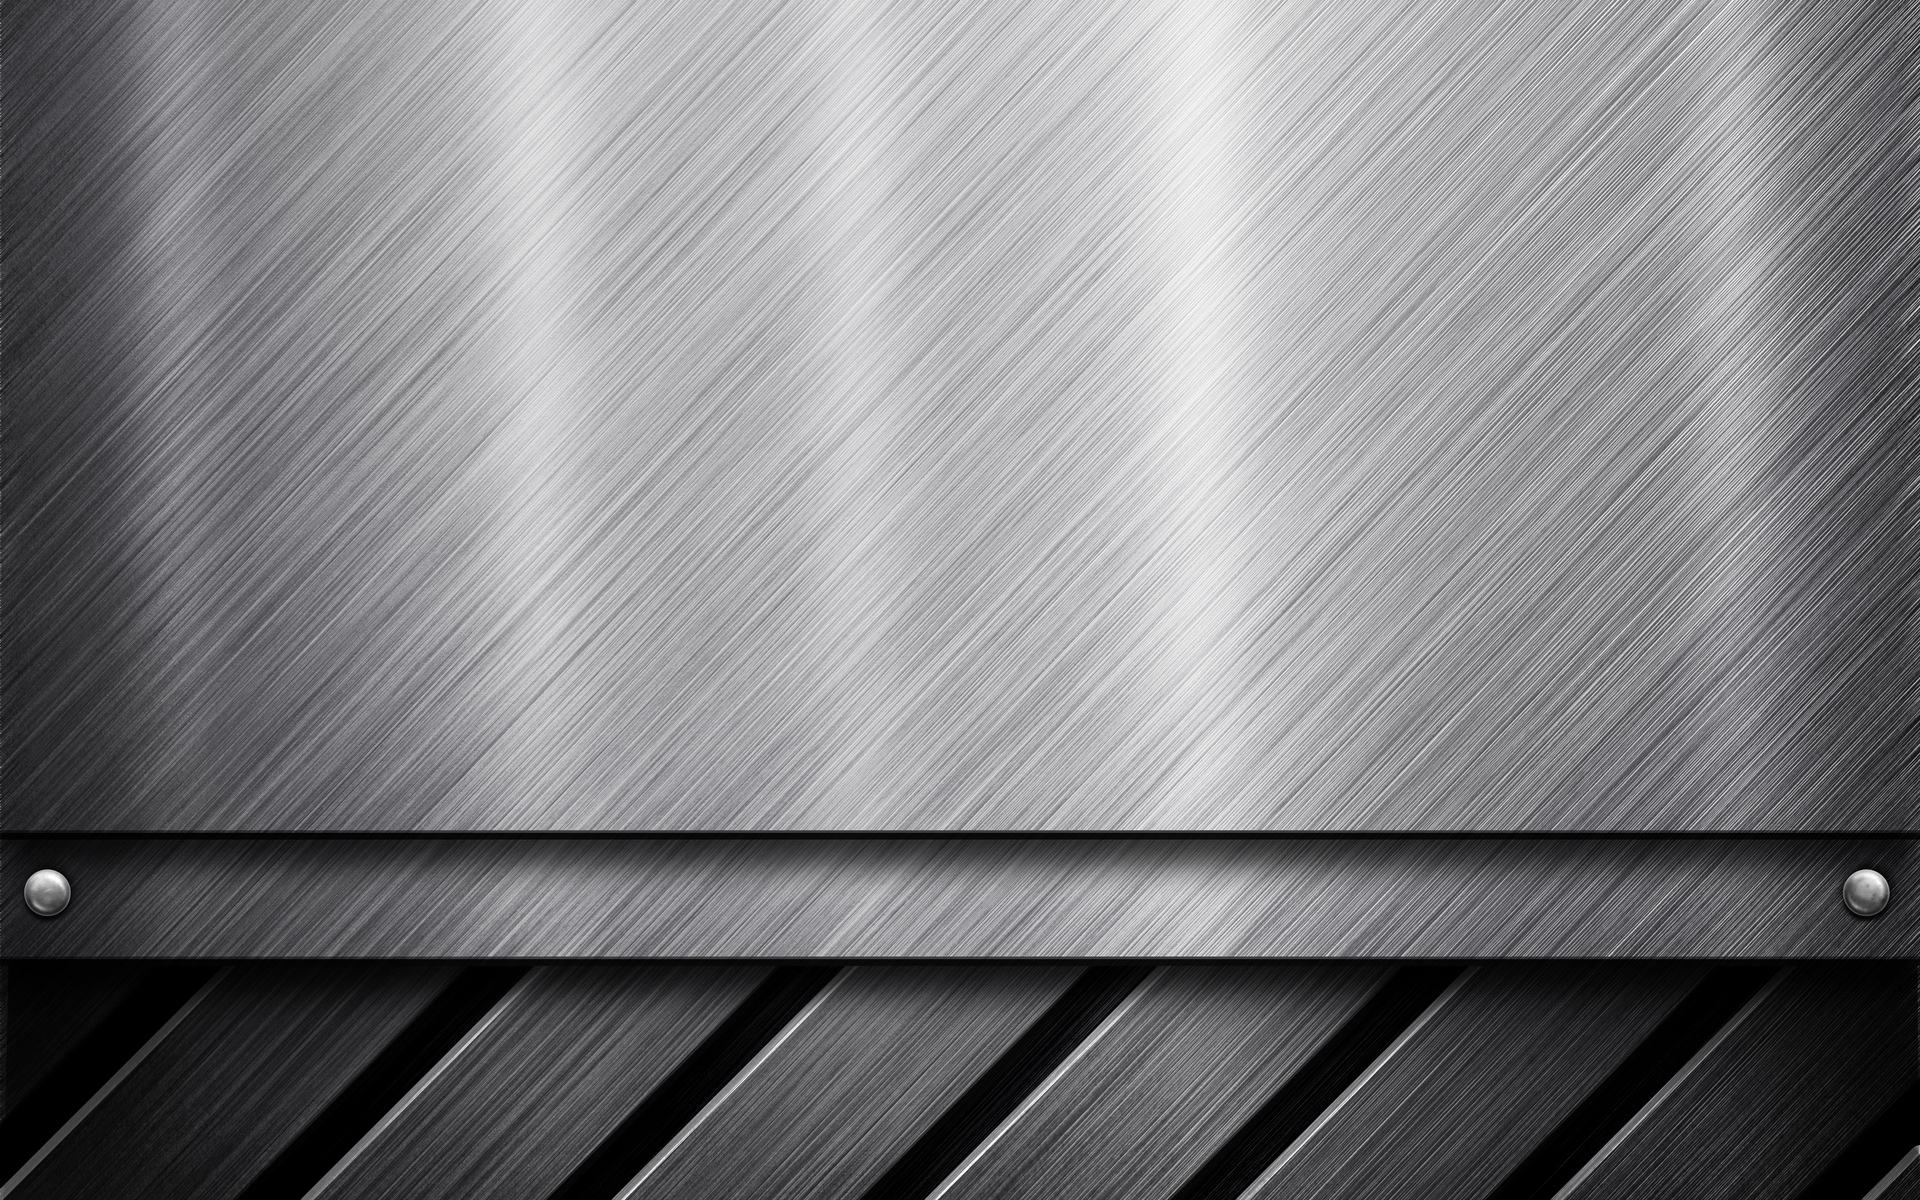 Metallic Texture Wallpaper